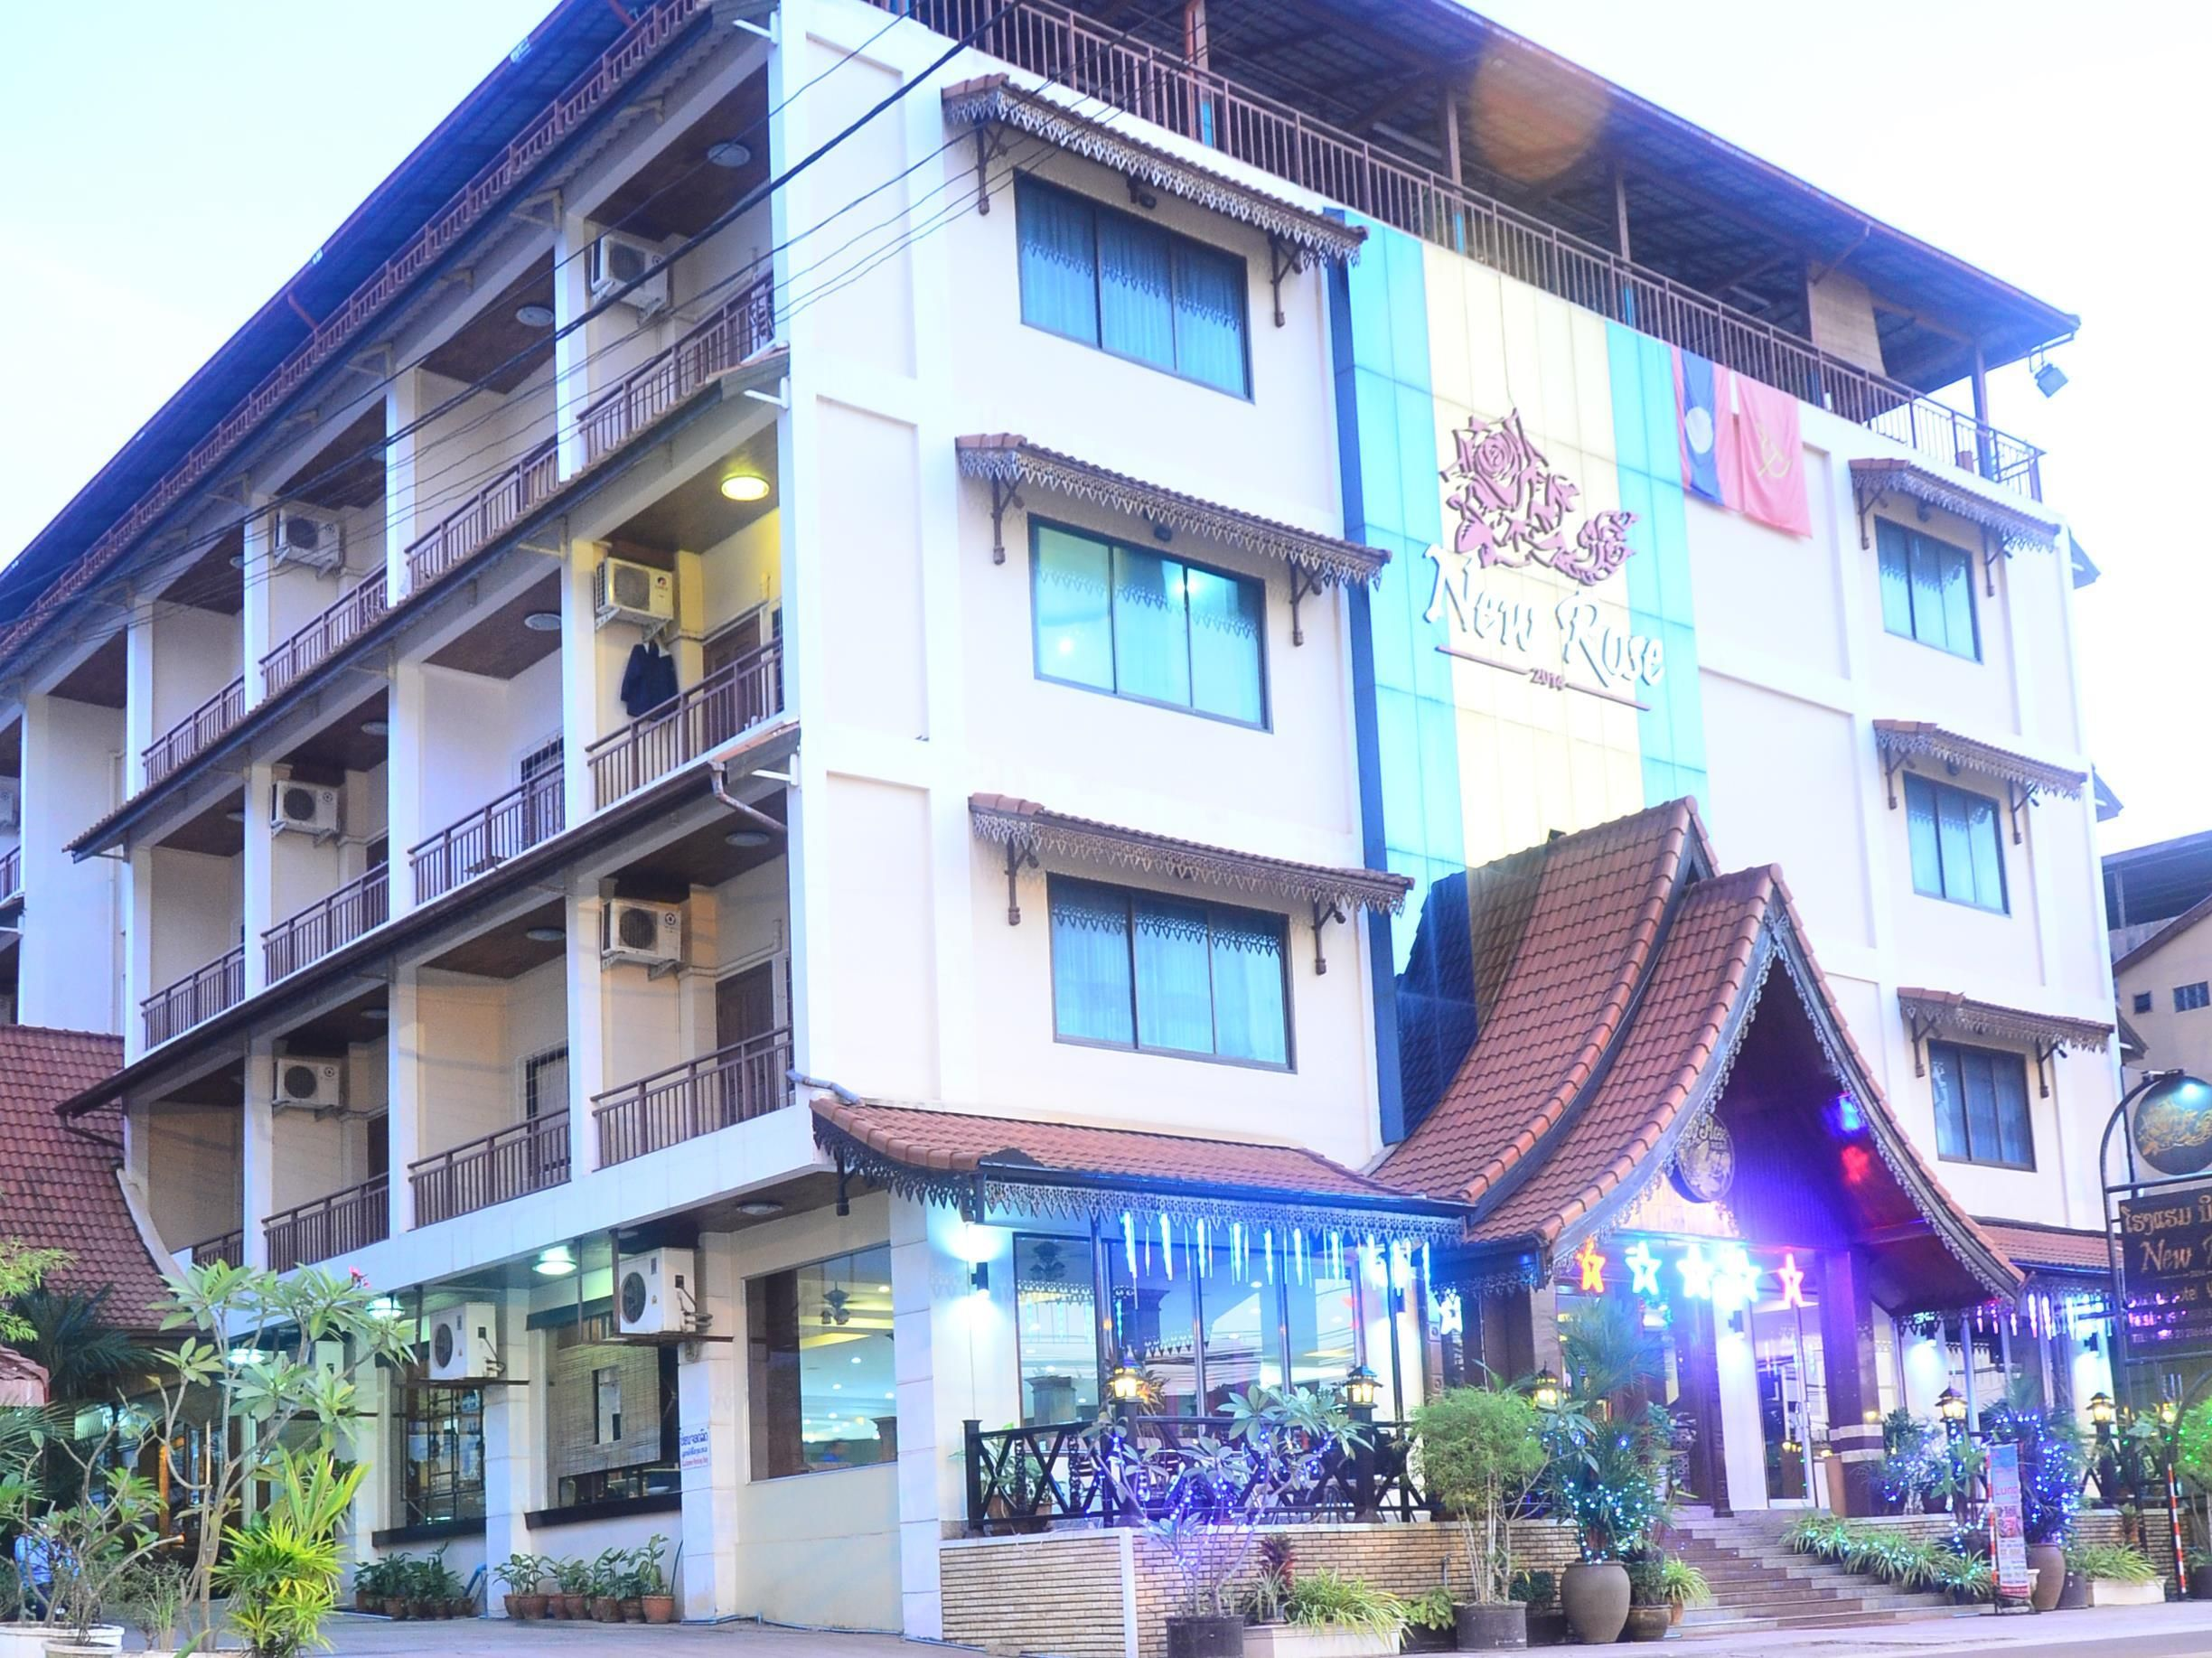 Vientiane New Rose Boutique Hotel Laos Asia Ideally Located In The Prime Touristic Area Of